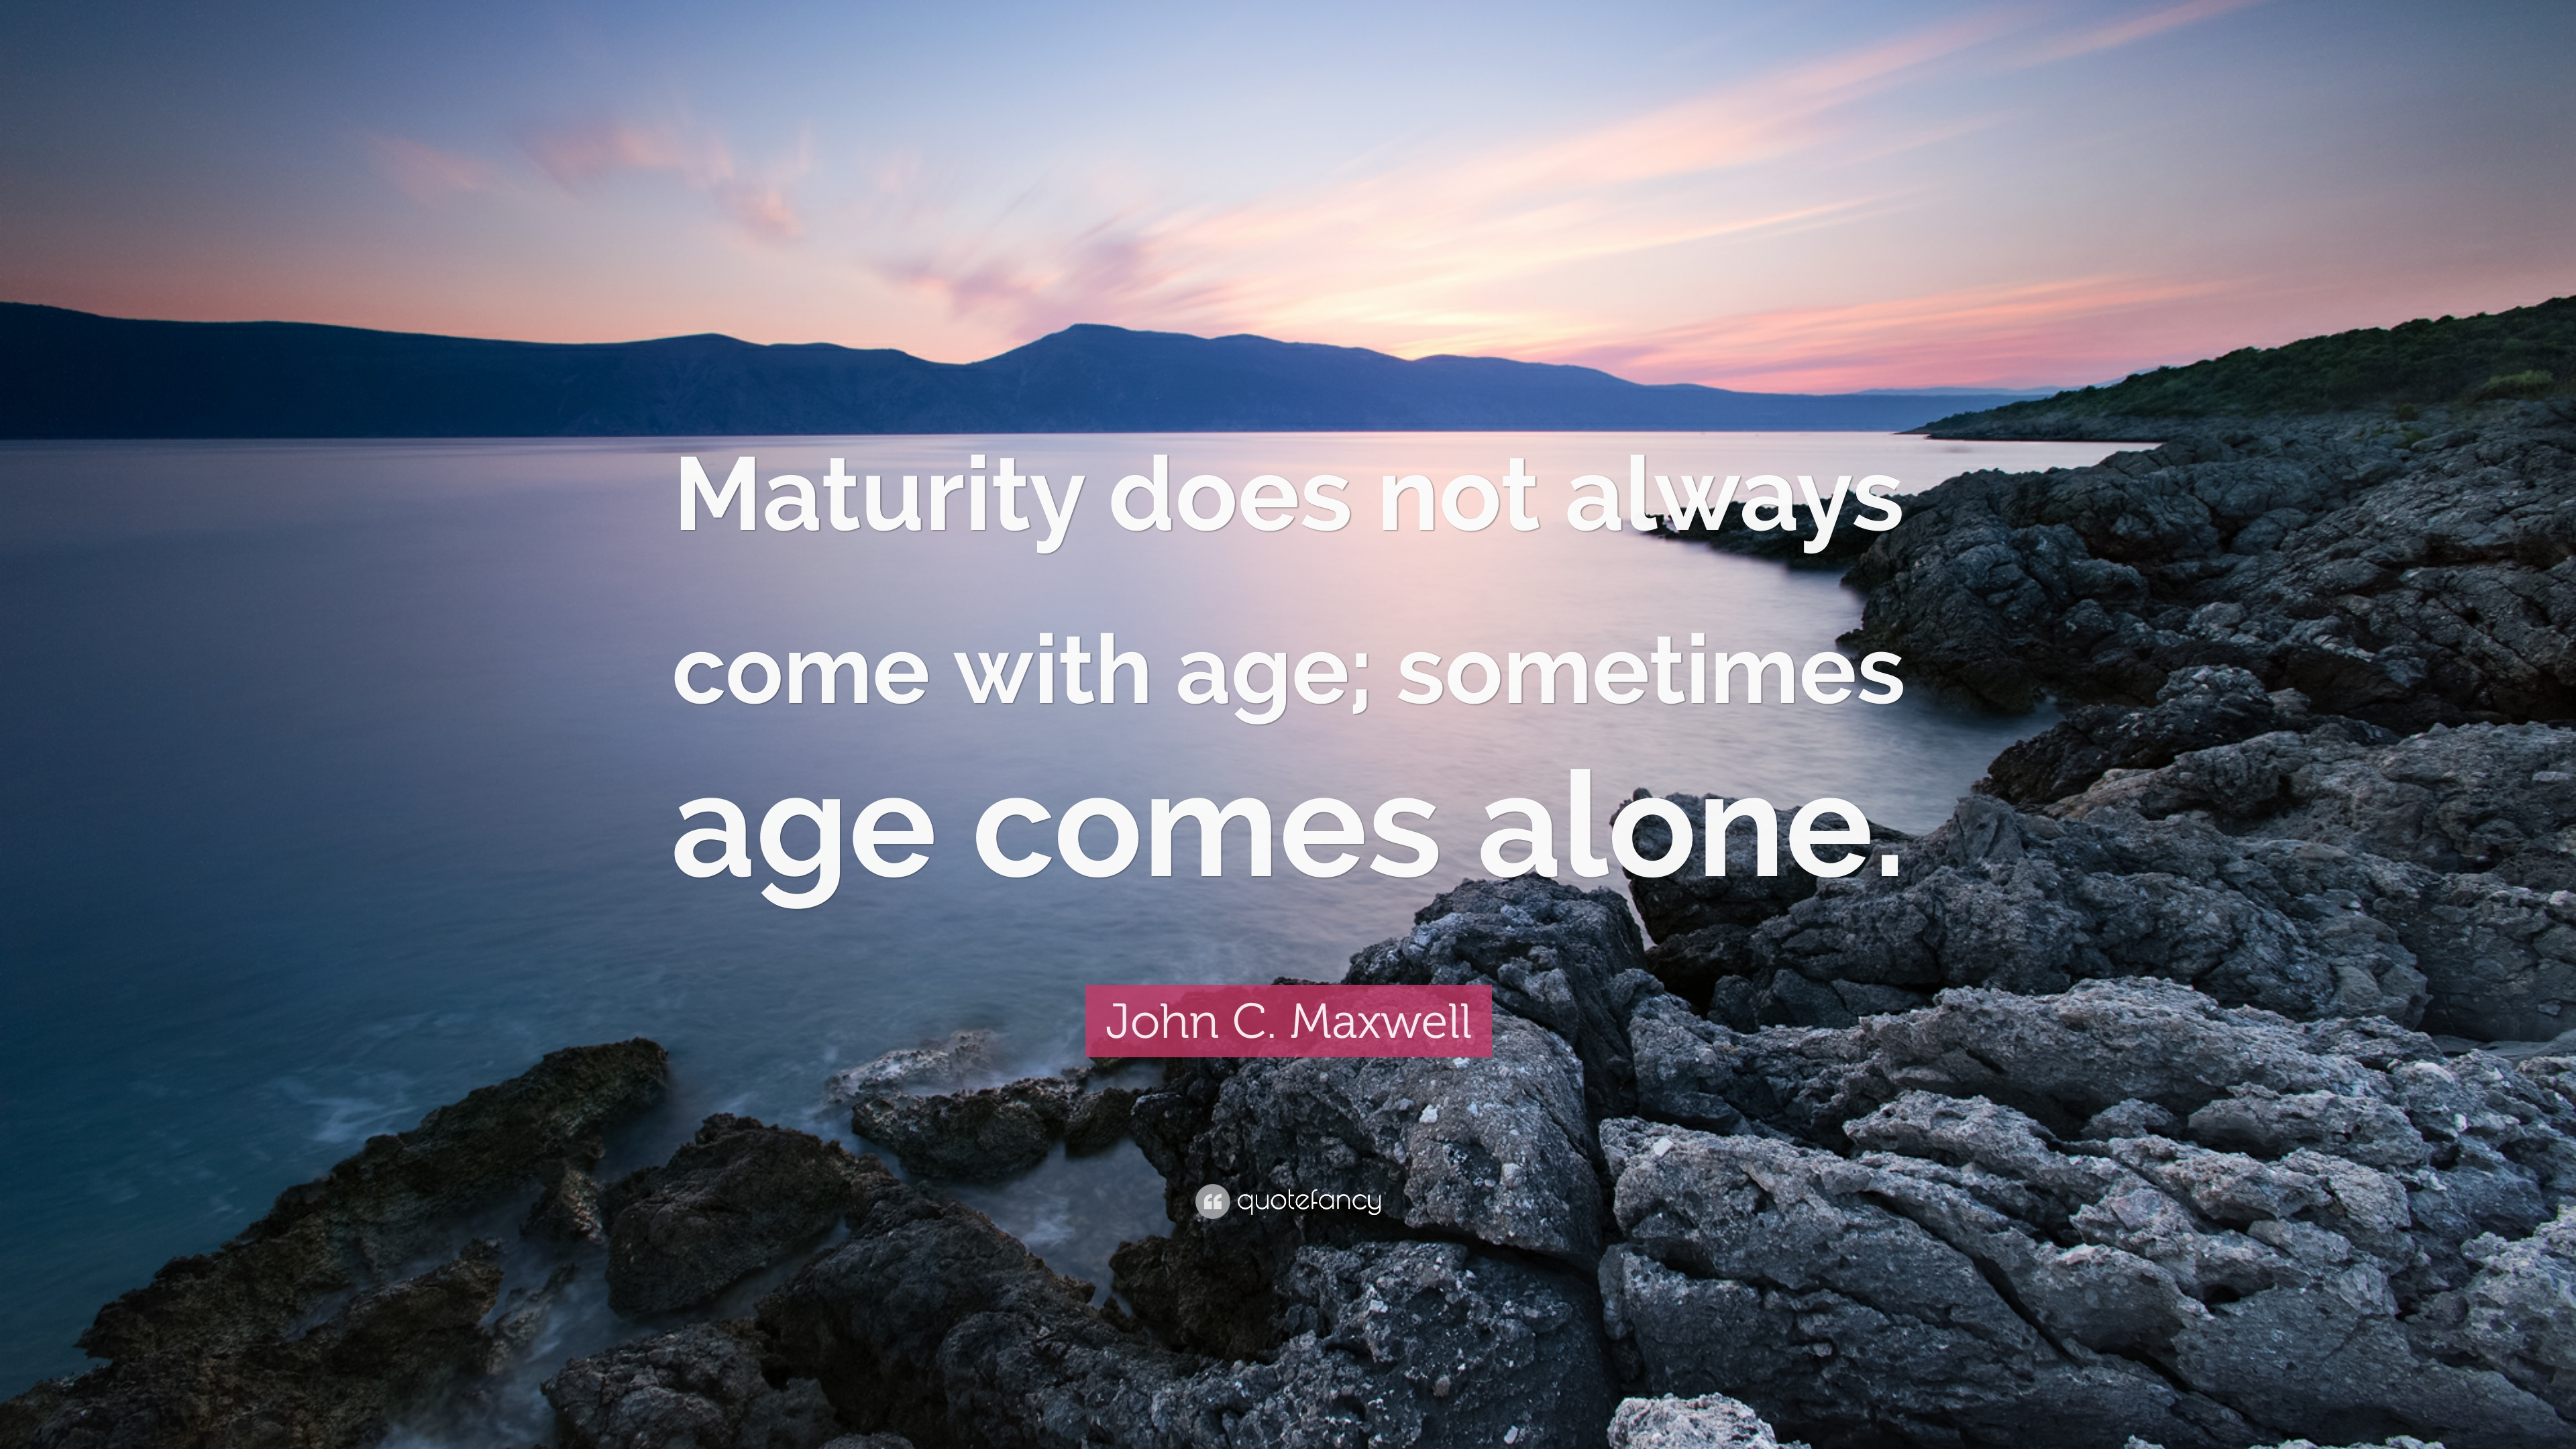 John C Maxwell Quote Maturity Does Not Always Come With Age Sometimes Age Comes Alone 7 Wallpapers Quotefancy